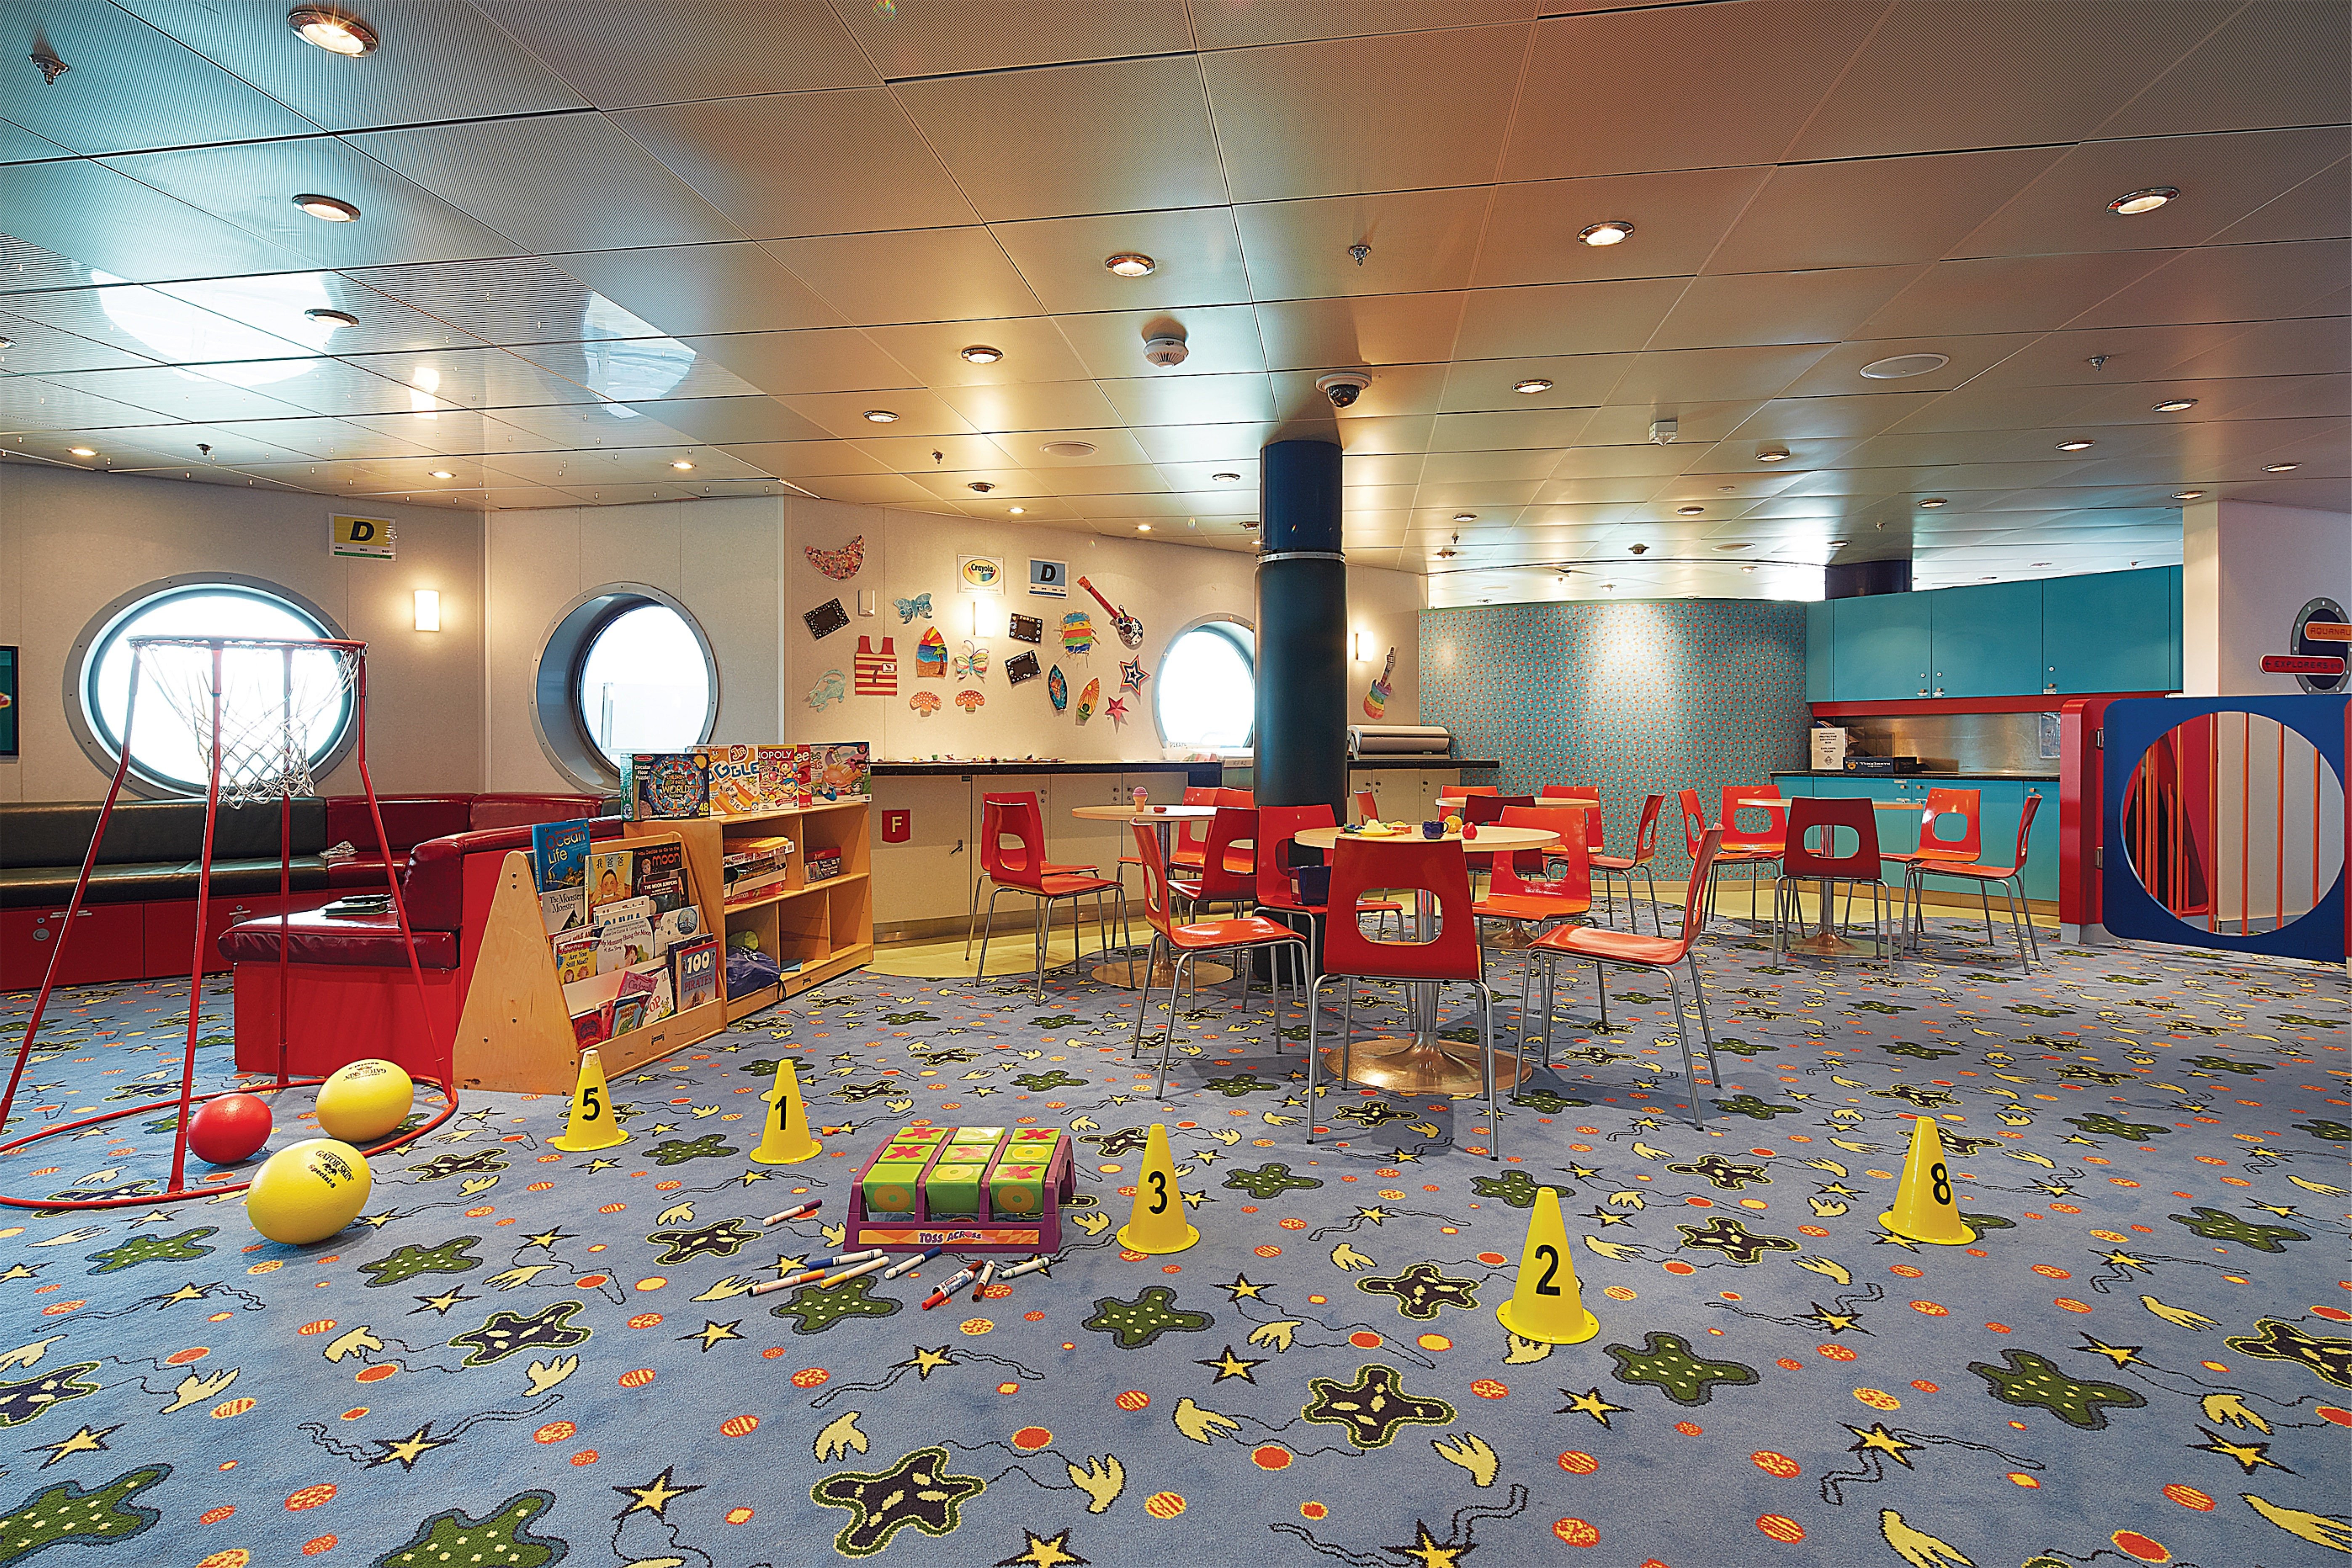 Royal Caribbean Best Area Of Ship For Room